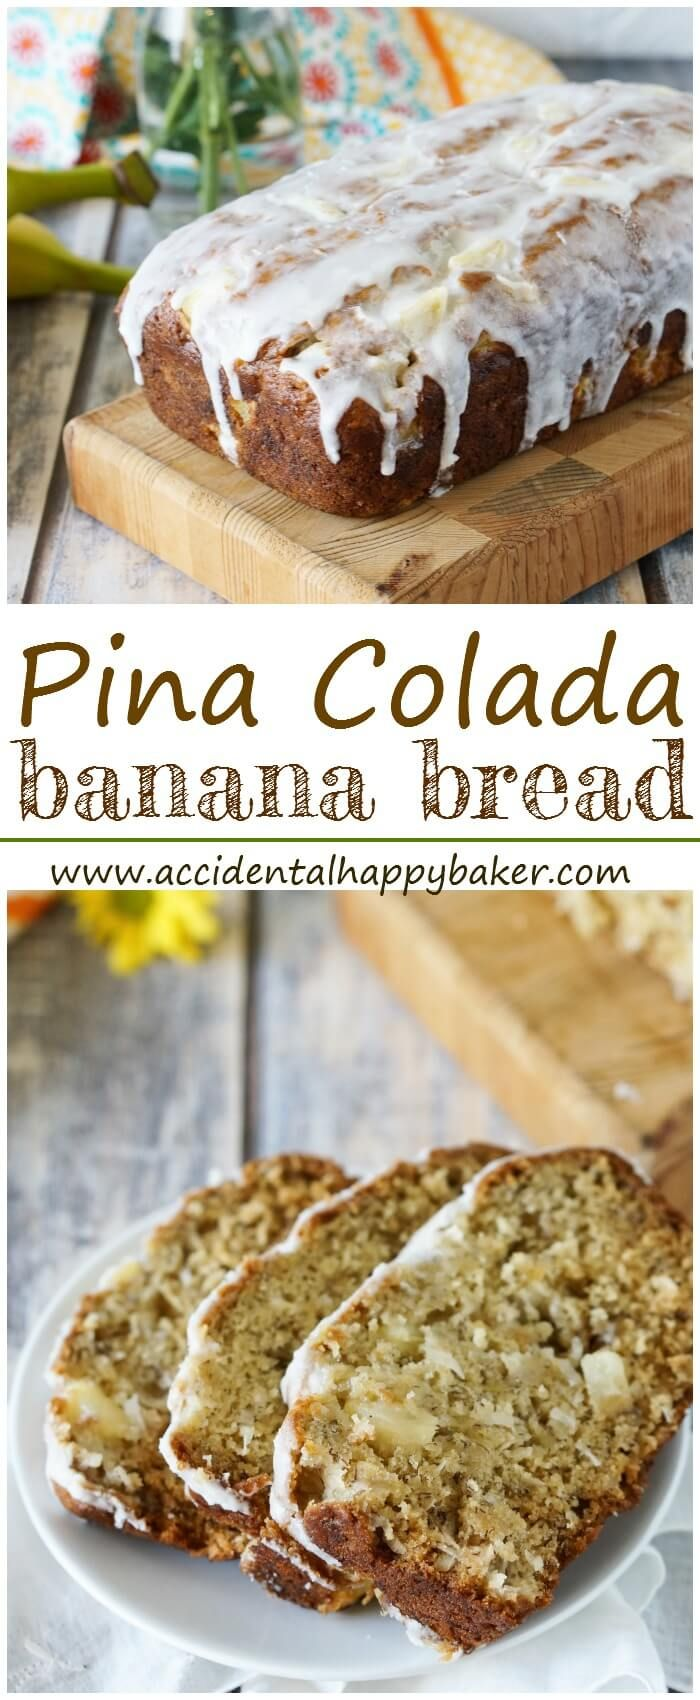 Pina colada banana bread is a tropical indulgence studded with pineapple, coconut, and a hint of rum, it has all your favorite pina colada flavors. BobsSpringBaking AD @BobsRedMill